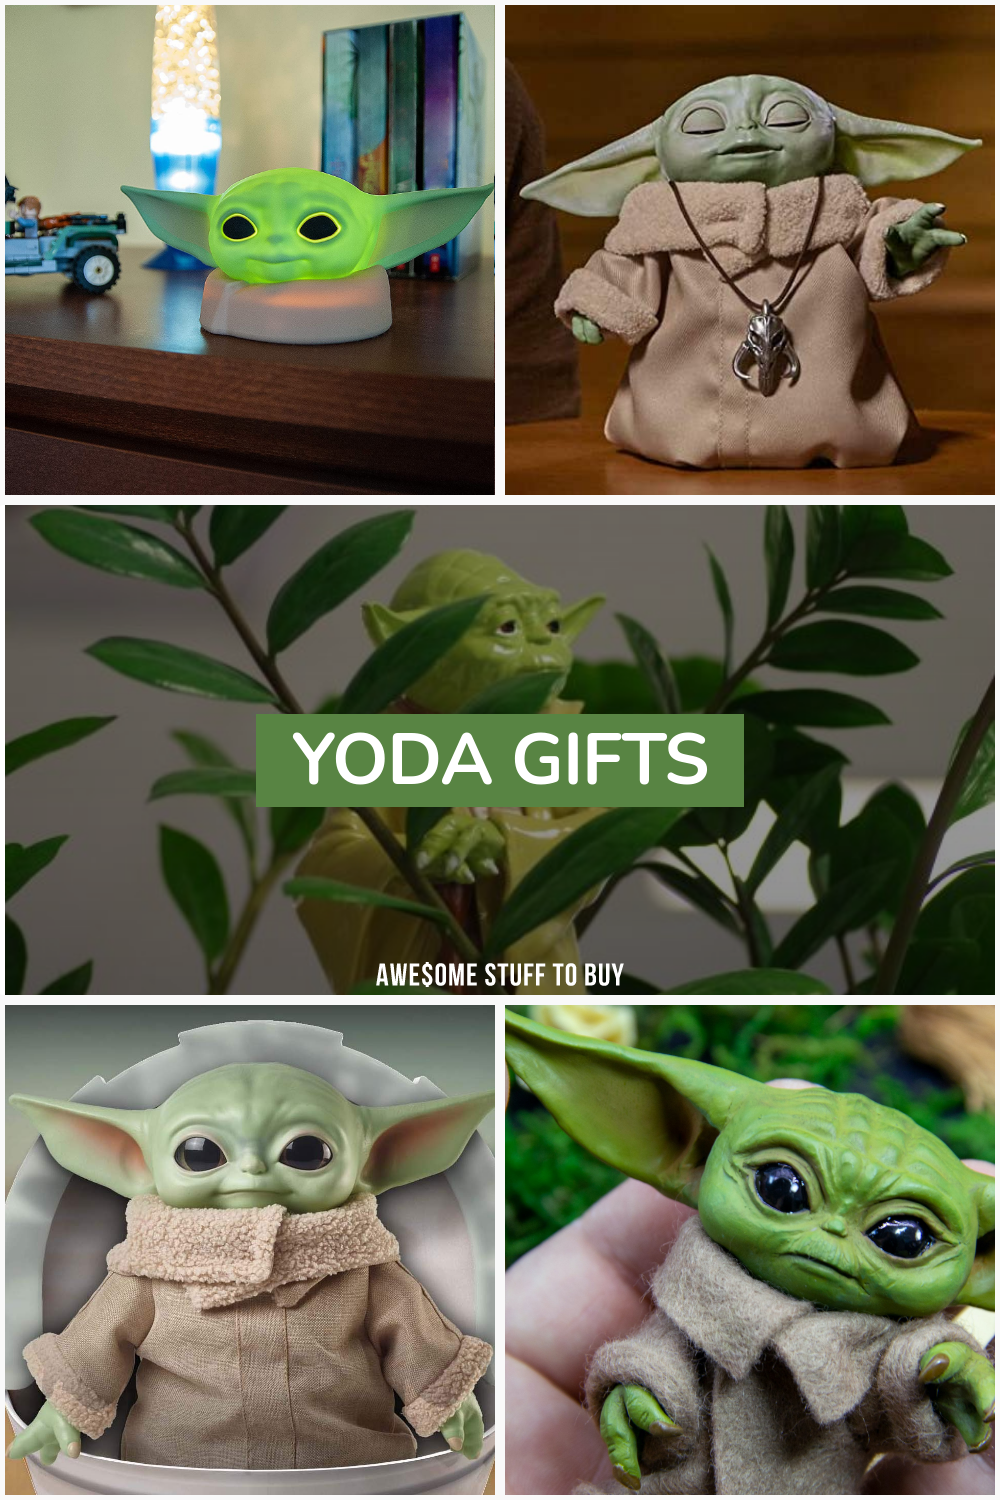 Yoda Gifts // Awesome Stuff to Buy